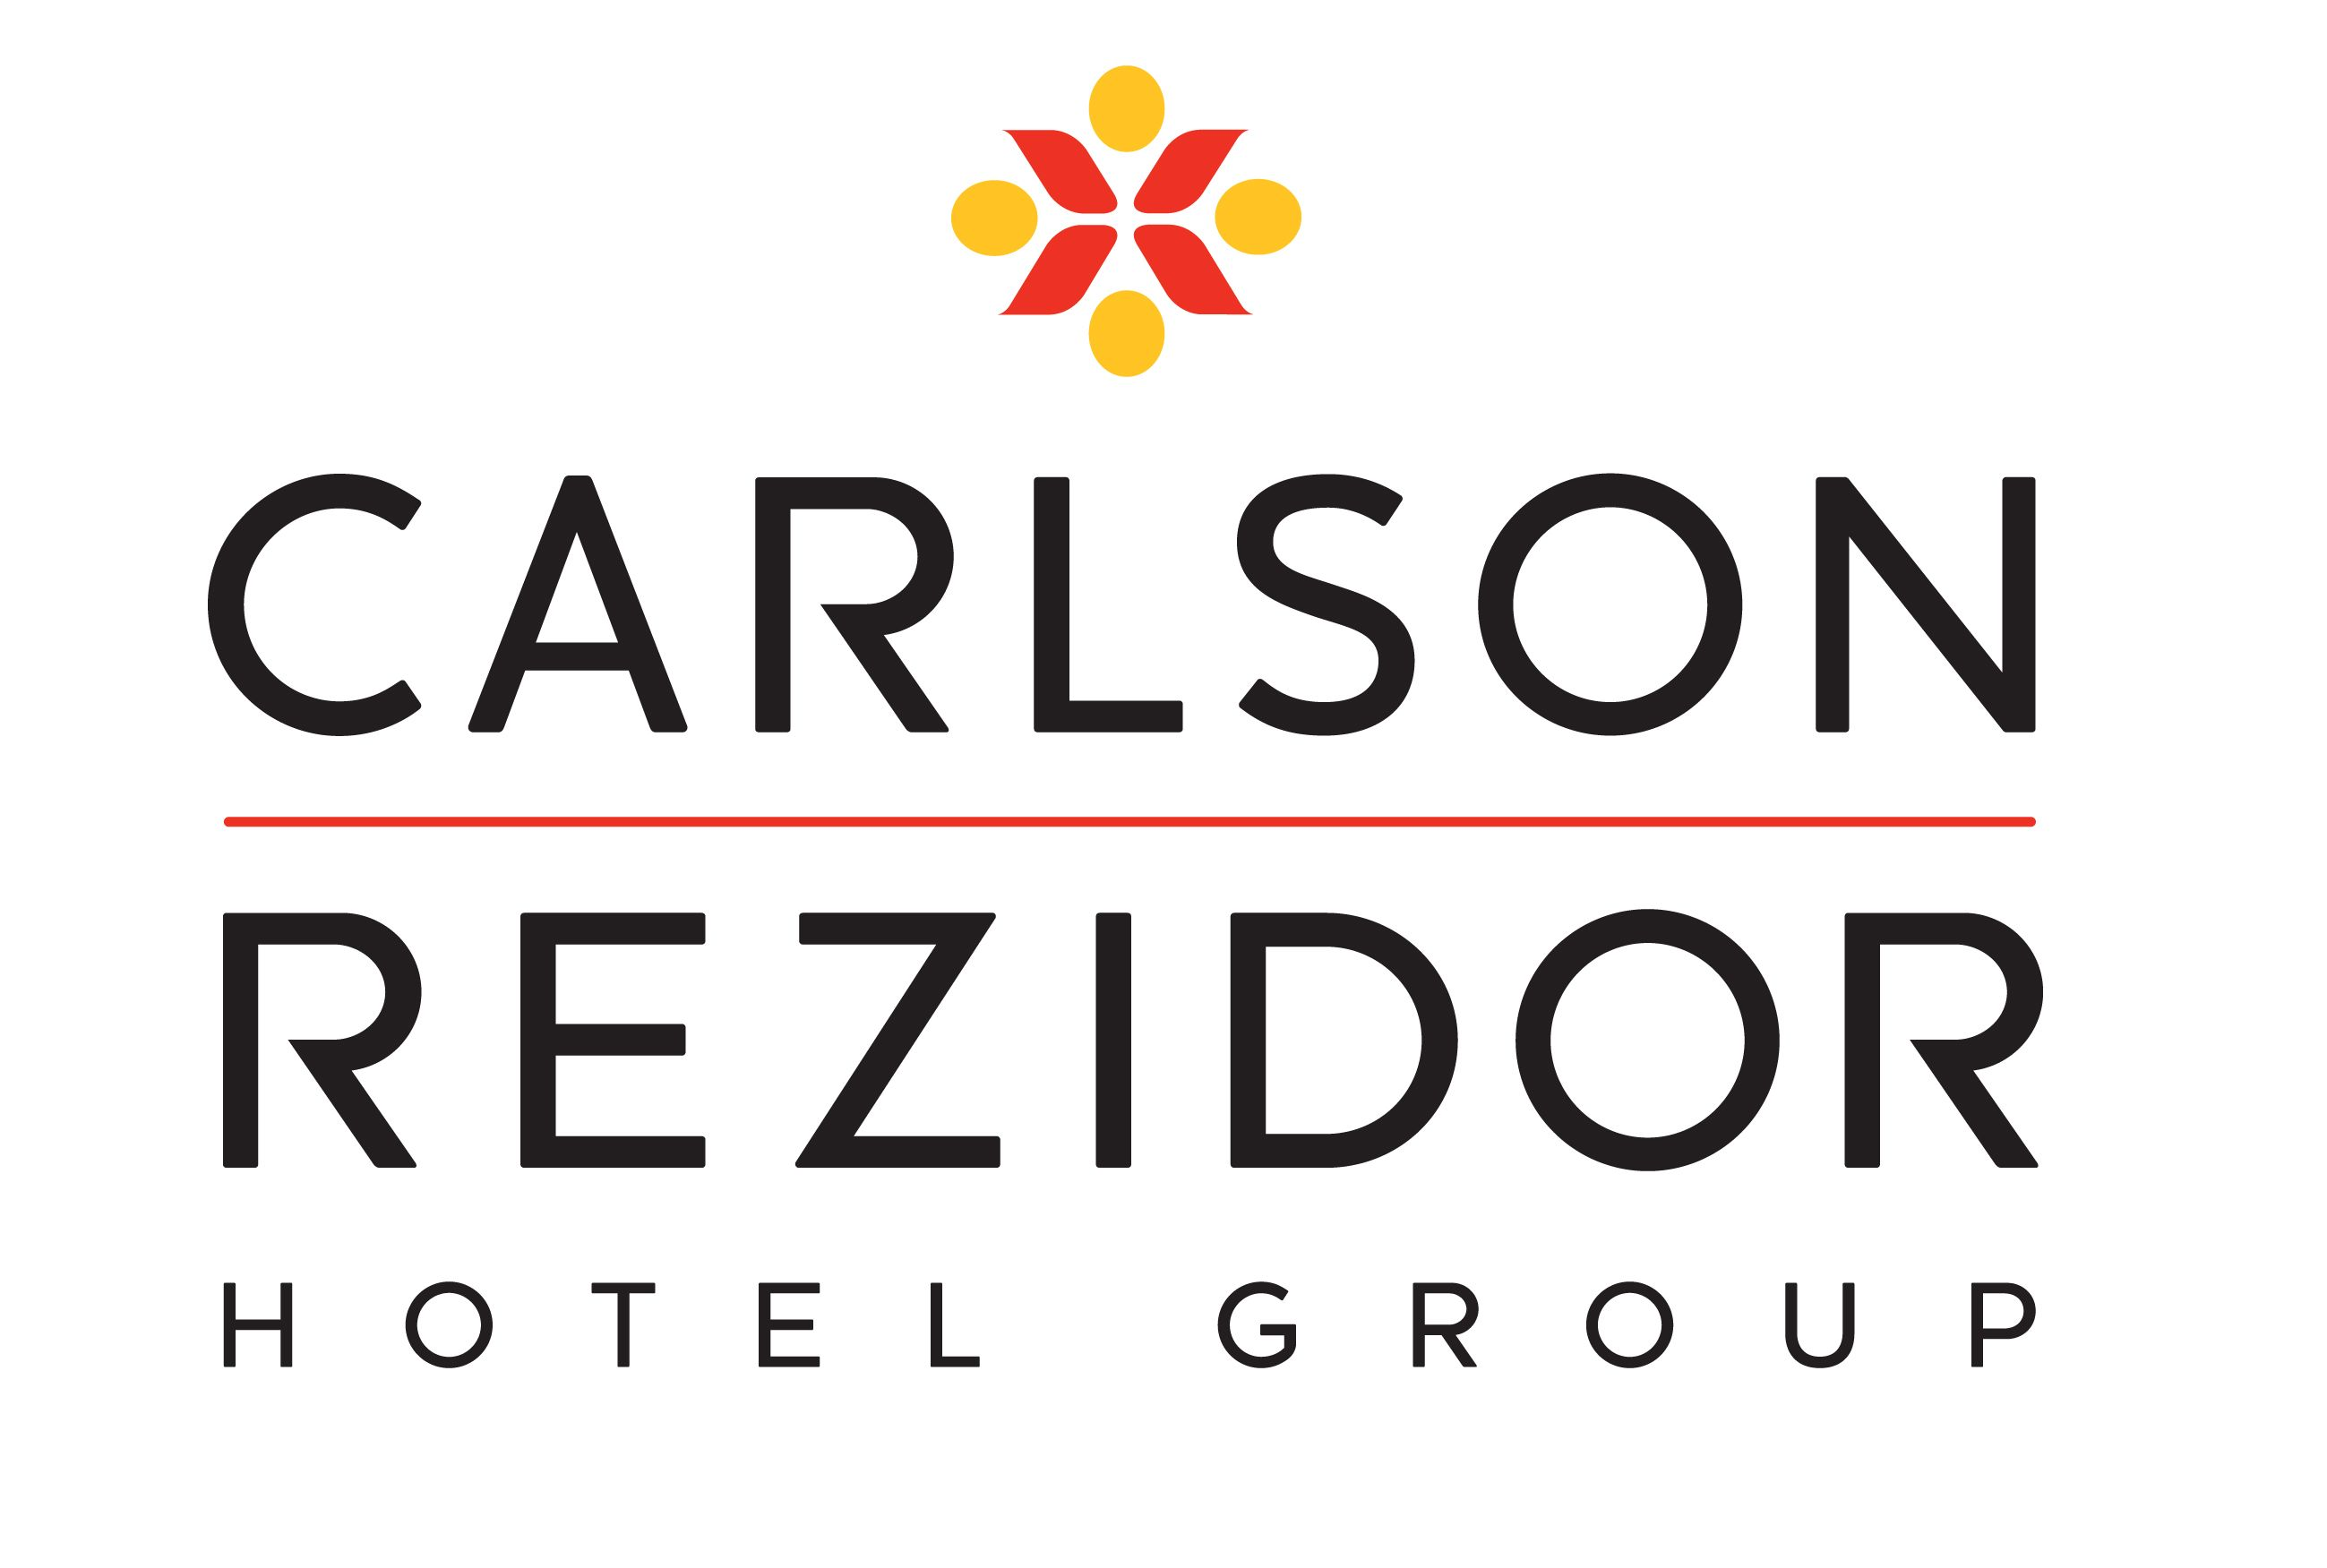 Casino group of hotels wiki